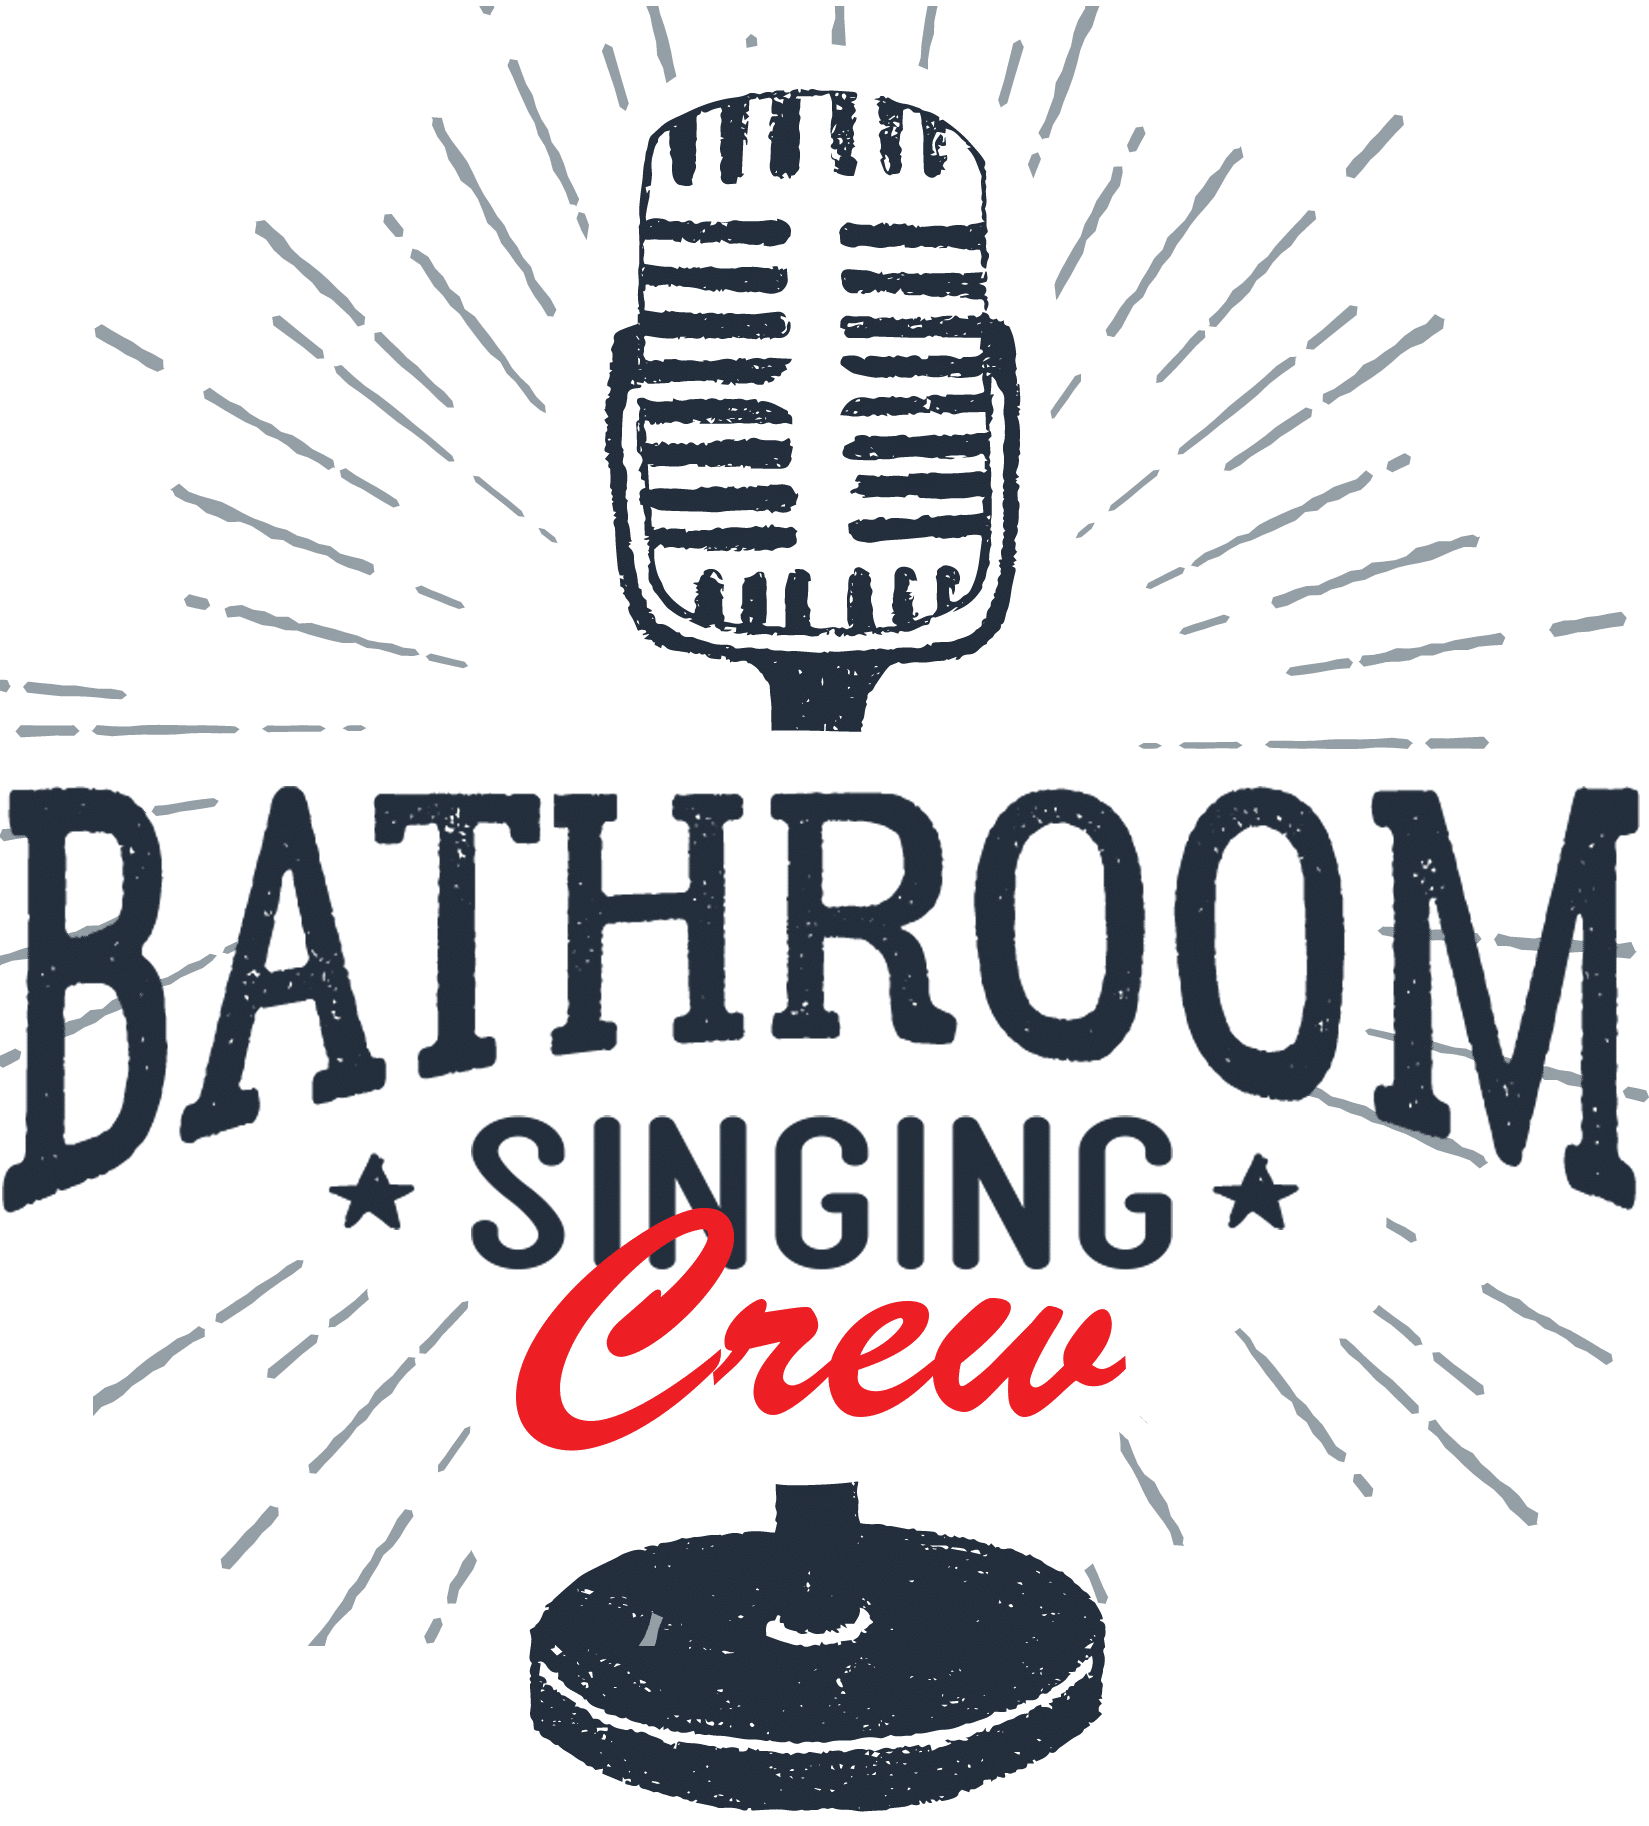 Bathroom Singing Crew